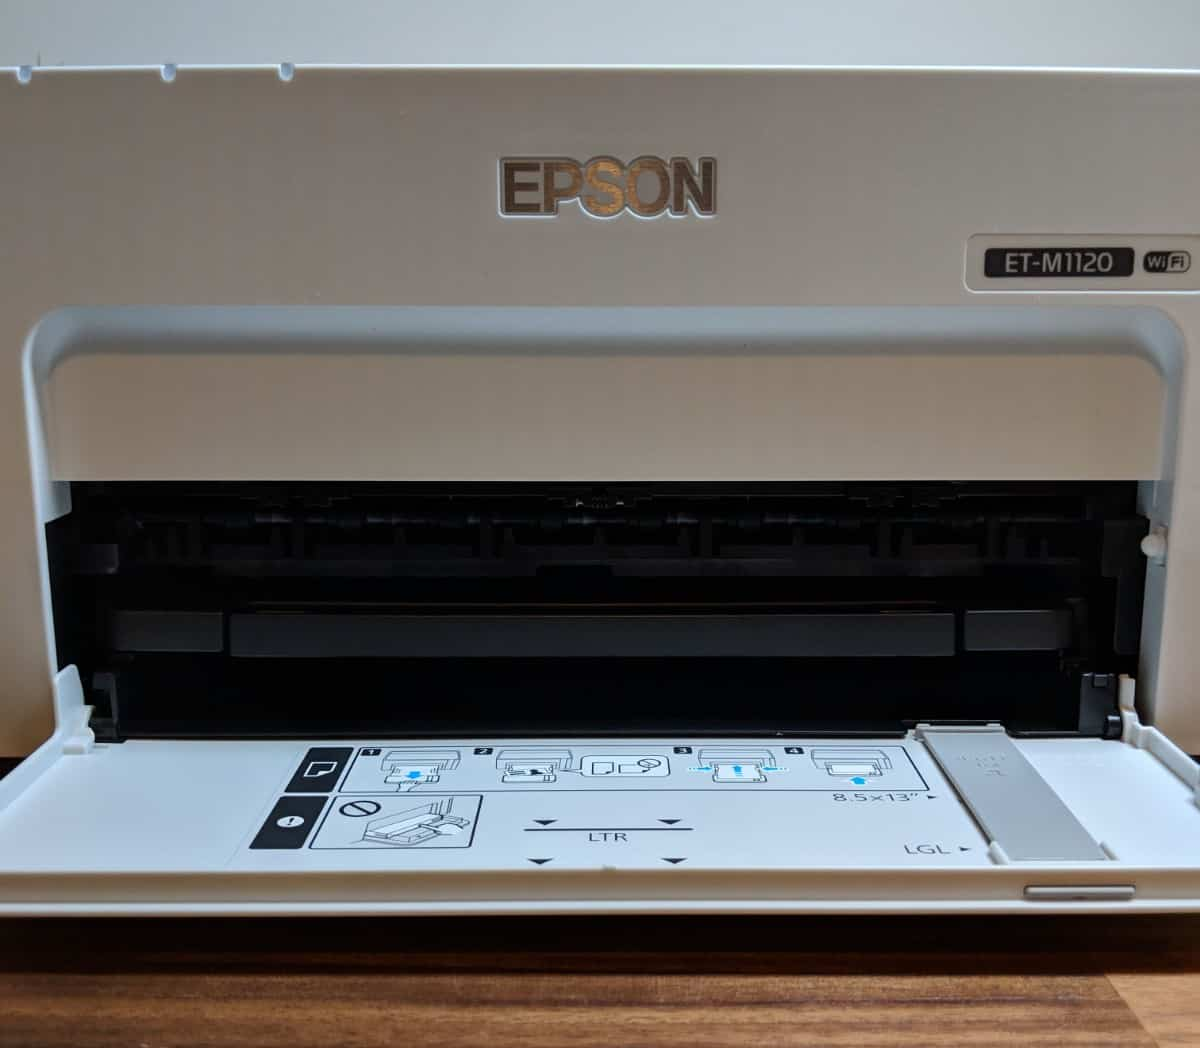 Epson-M1120-Photos-10 Epson EcoTank ET-M1120 Review